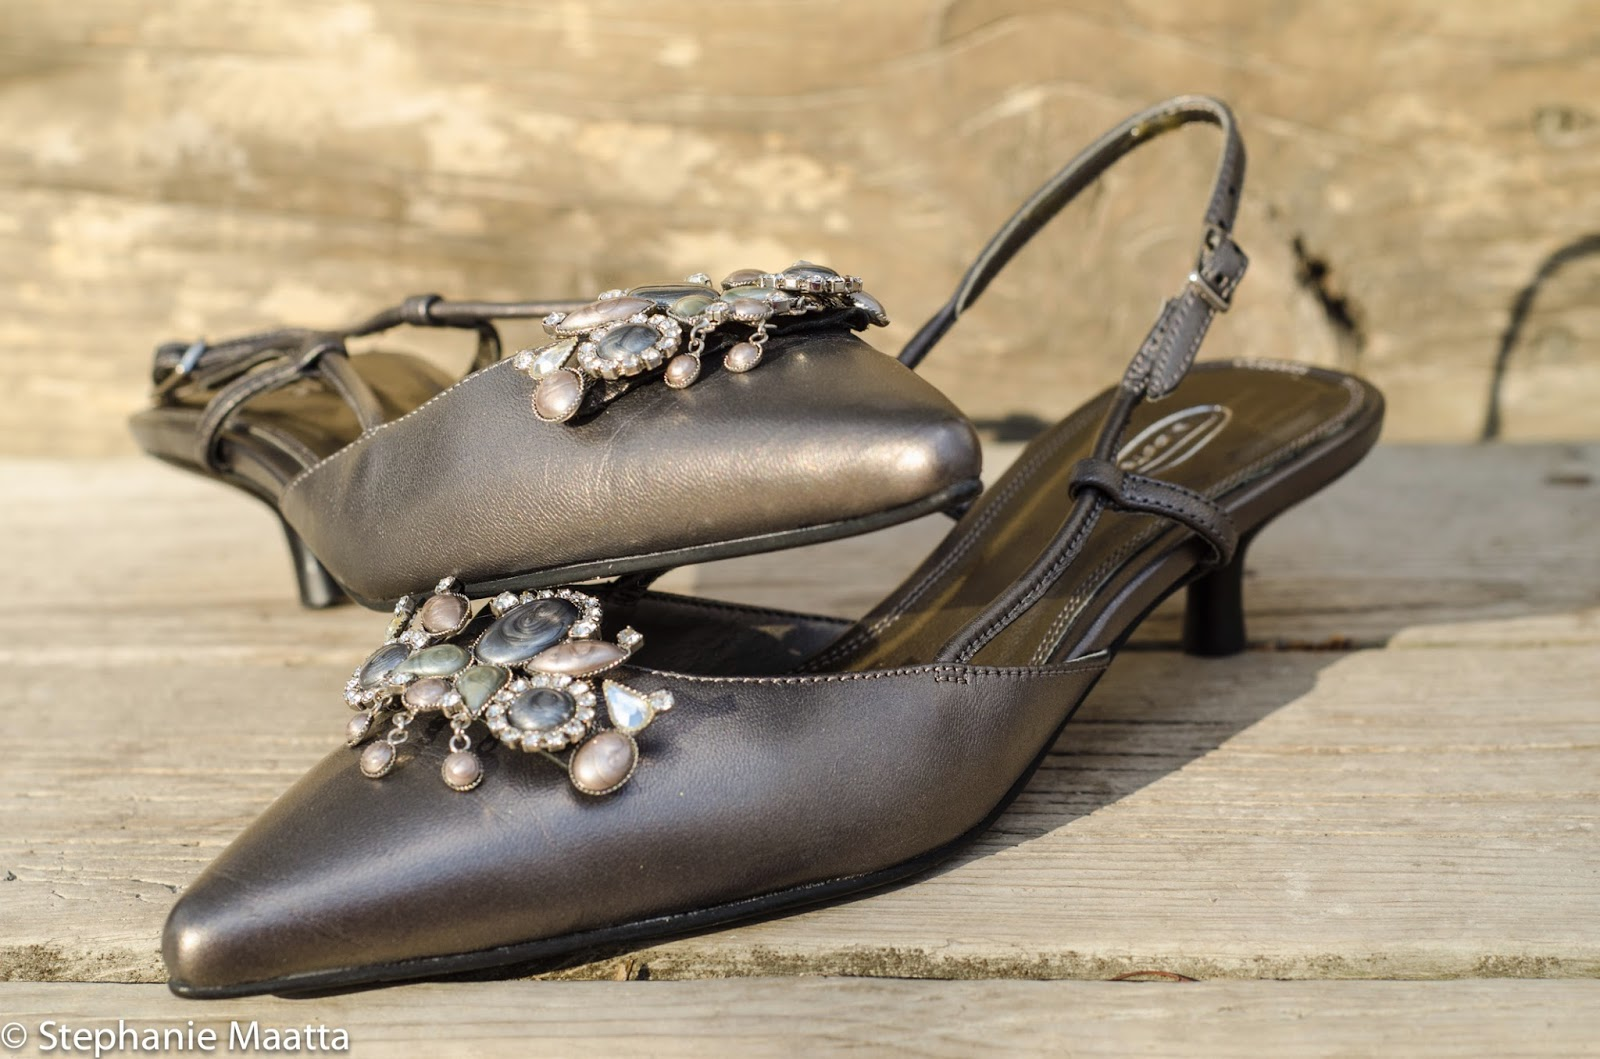 image of a pair of shoes with jeweled brooches on wooden stairs